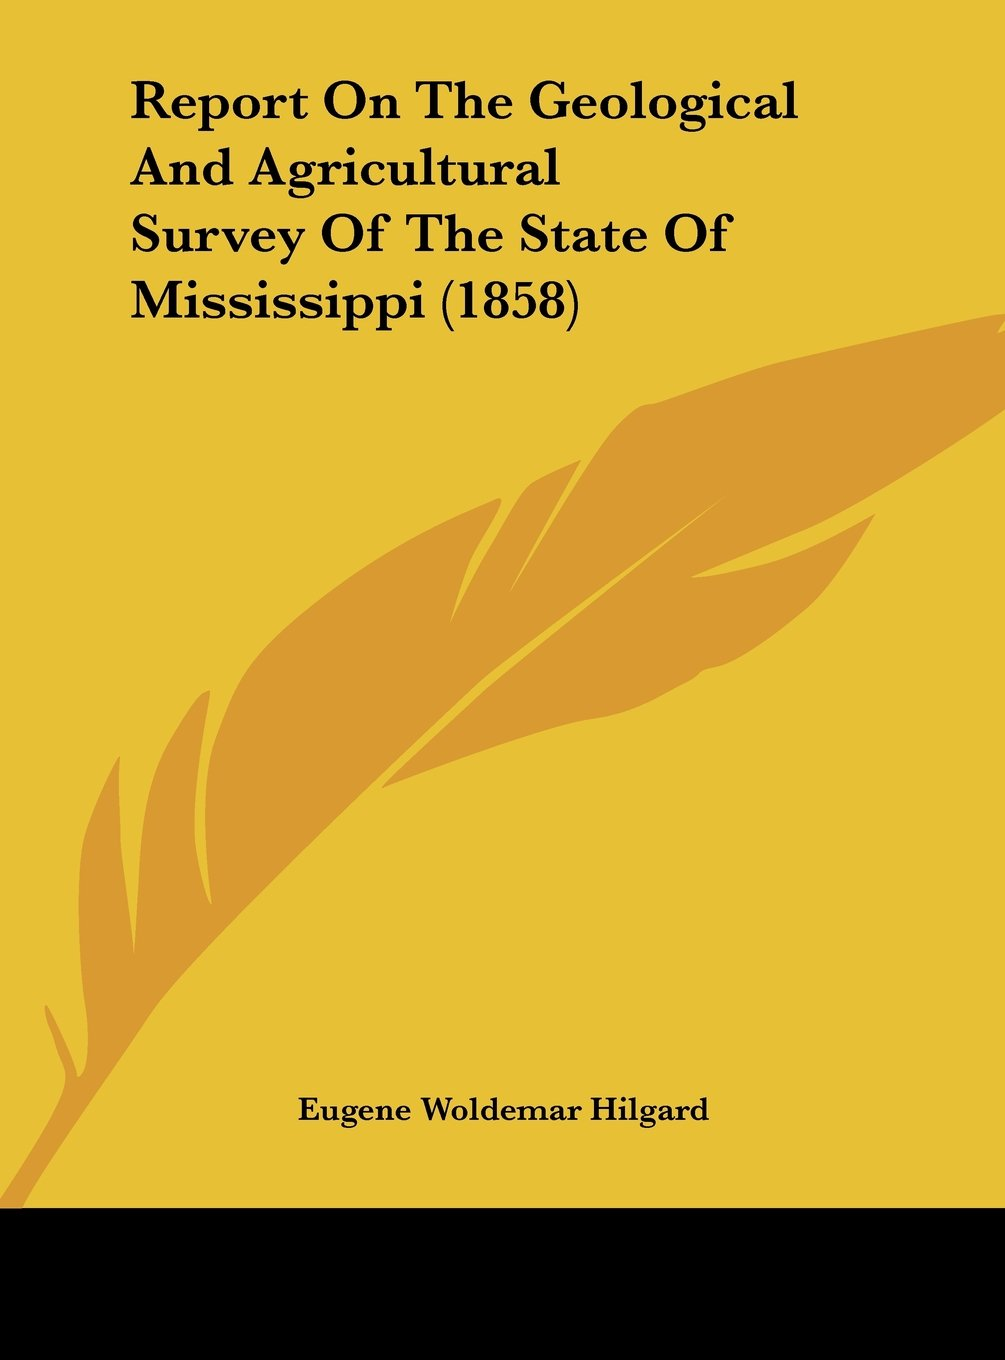 Report on the Geological and Agricultural Survey of the State of Mississippi (1858) ebook